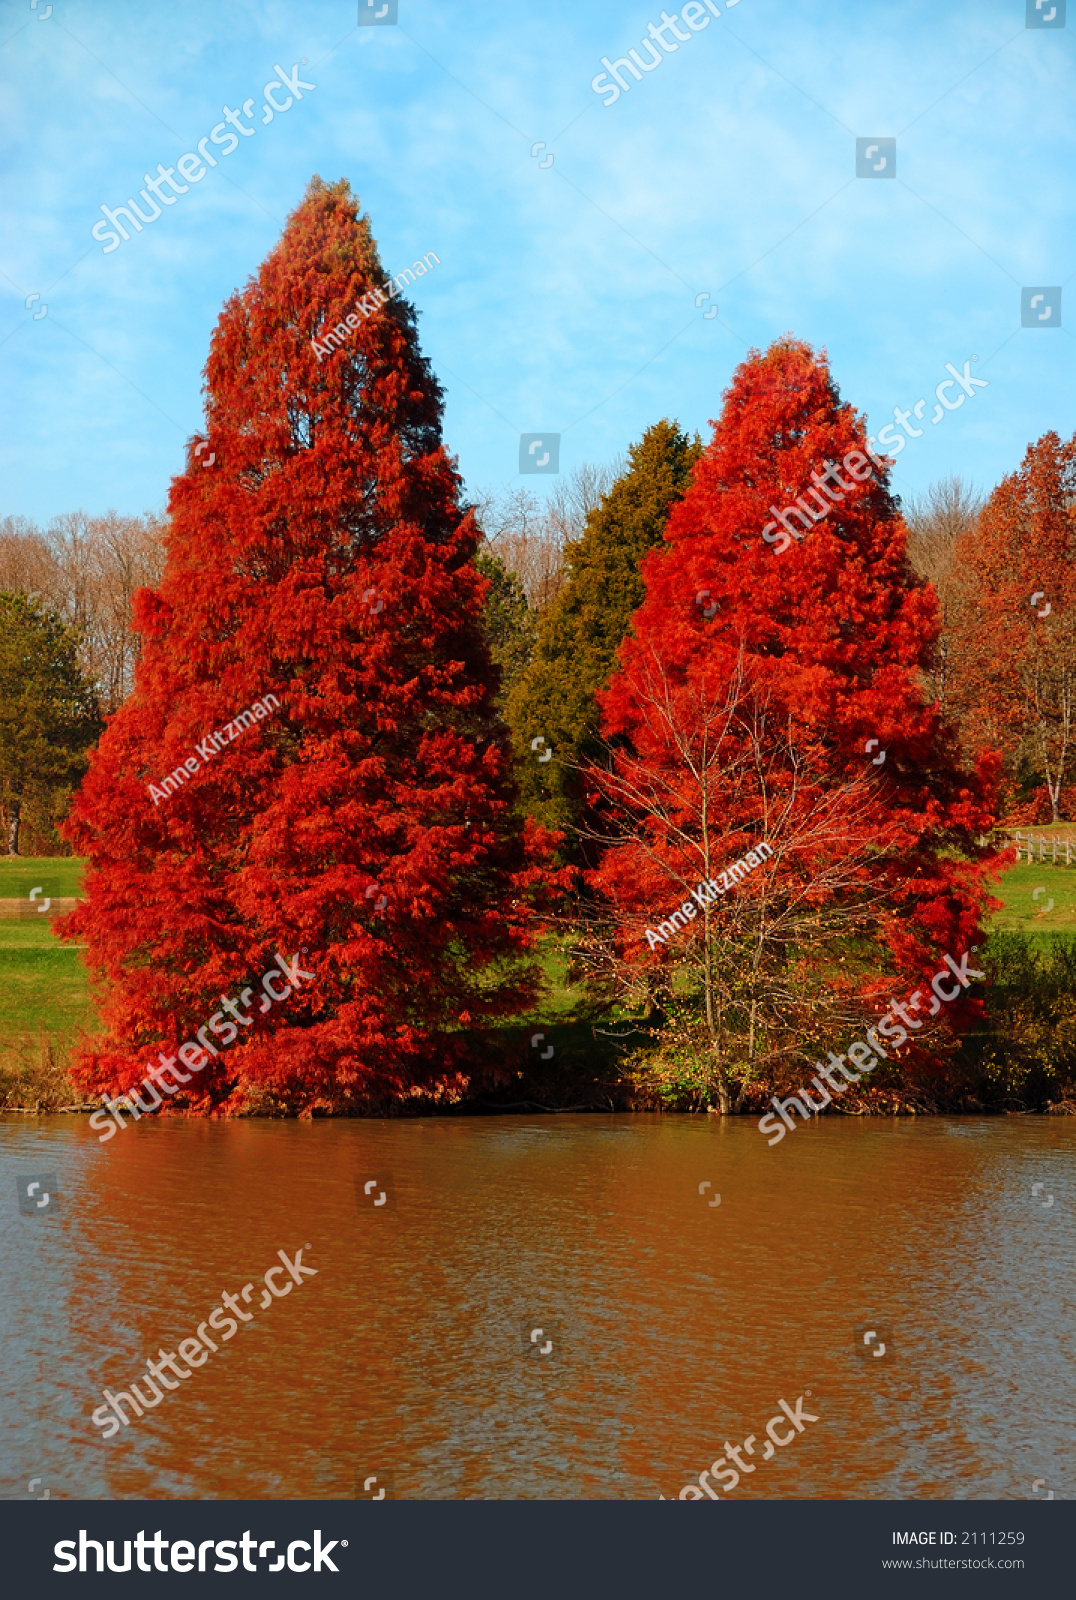 Free Country Fall Wallpaper Red Pines Two Pine Trees Red Stock Photo 2111259